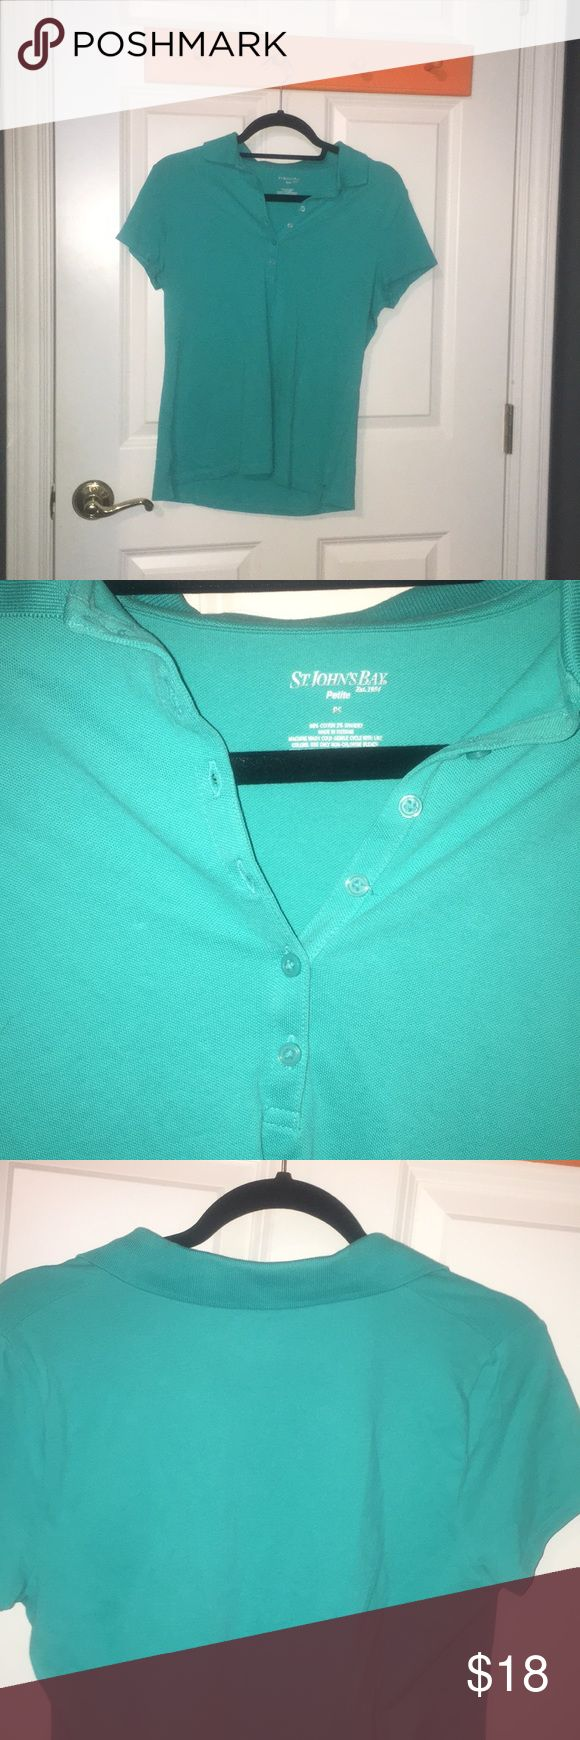 Green polo shirt Green polo perfect for charter schools or work! Beautiful quality and not too heavy. Worn once when I shadowed a school. Size petite small St. John's Bay Tops Blouses